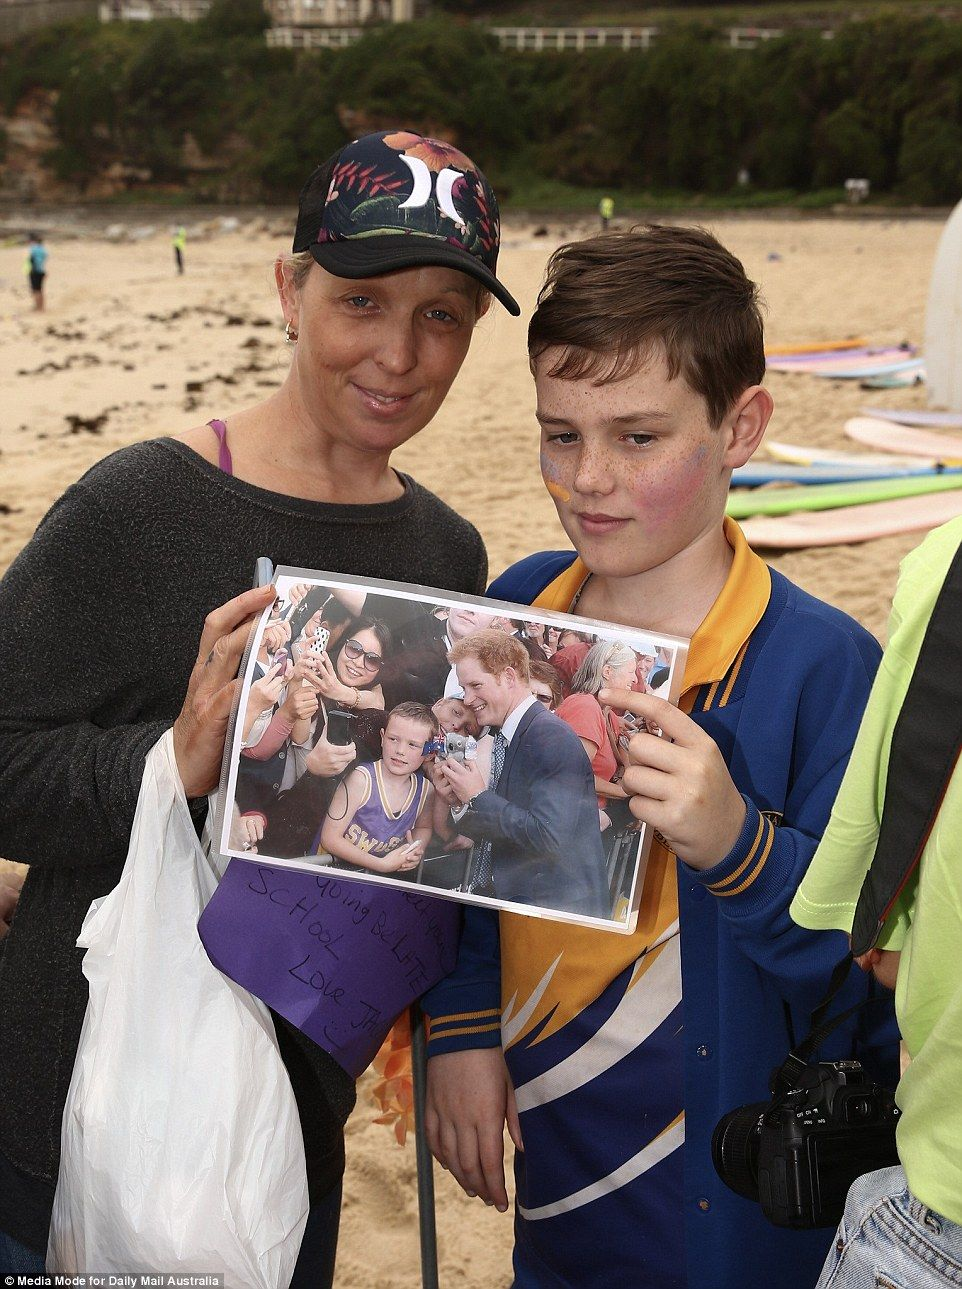 68396d9fe ... kick off shoes on beach. Jacob Andrews is pictured holding a photograph  of himself as a seven-year-old when he met Prince Harry at Circular Quay